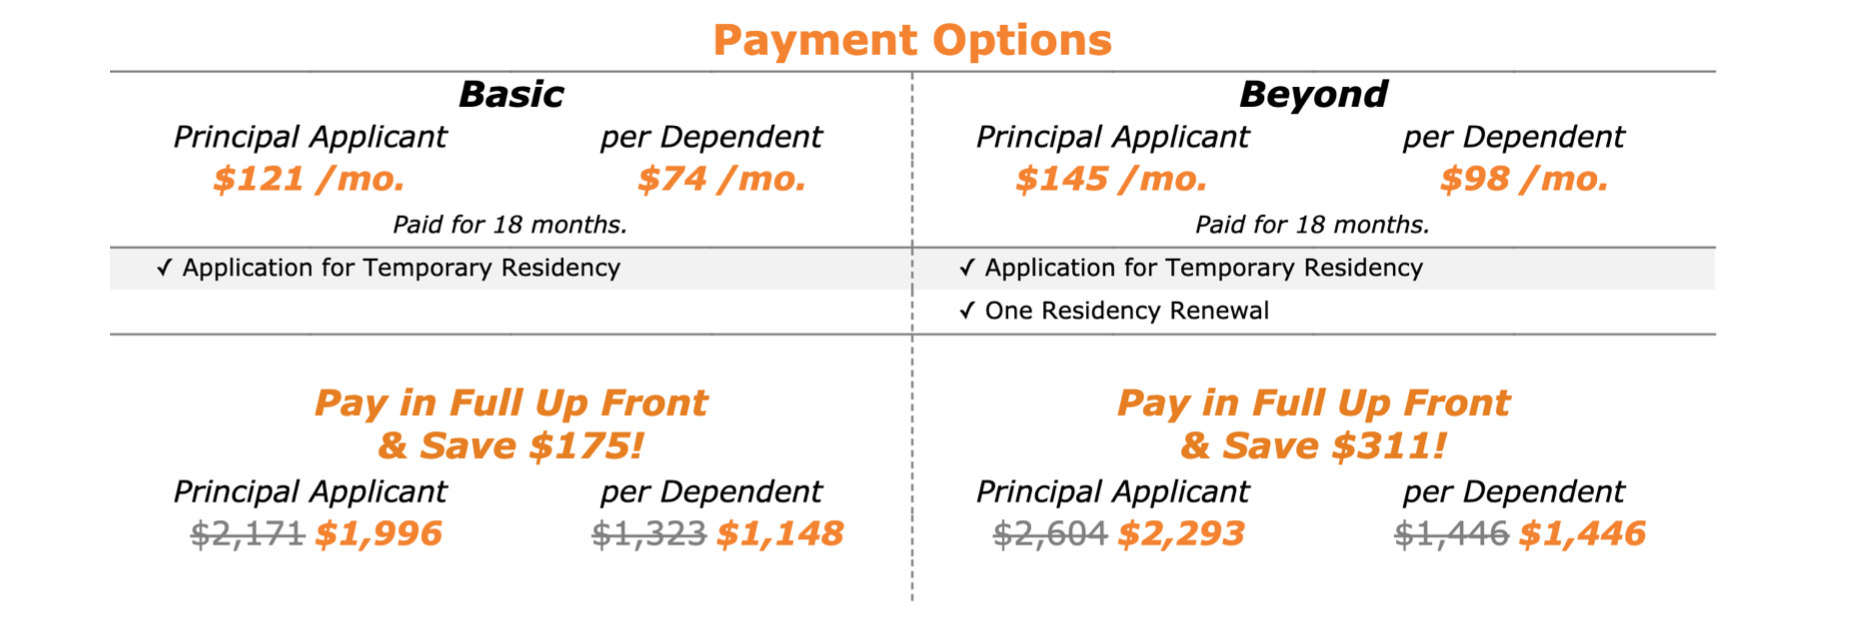 Payment Options for Temporary Residency as a Rentista